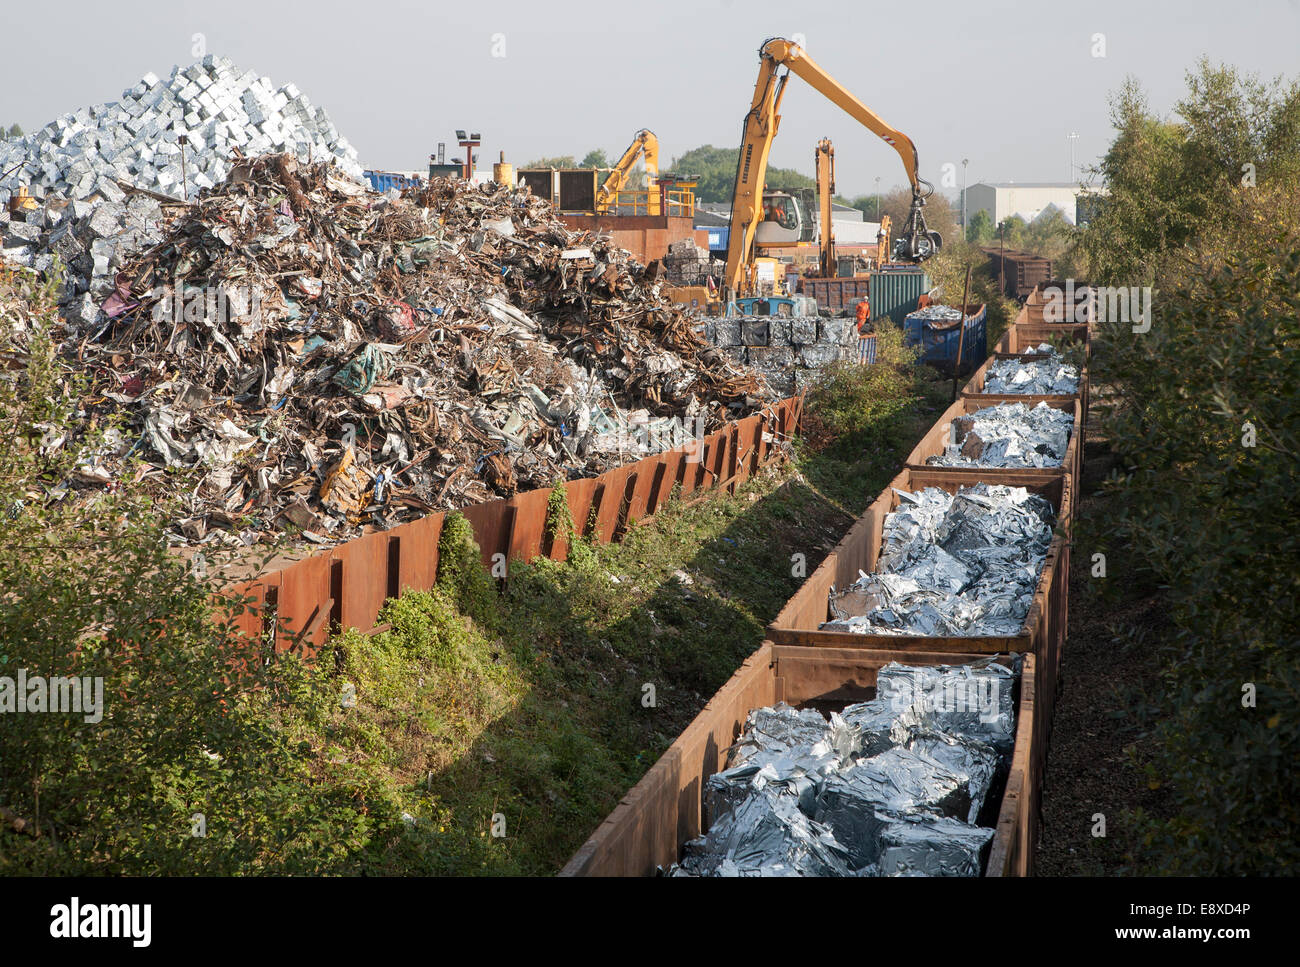 Scrap metal recycling loading train wagons with processed metals, EMR company, Swindon, England, UK Stock Photo